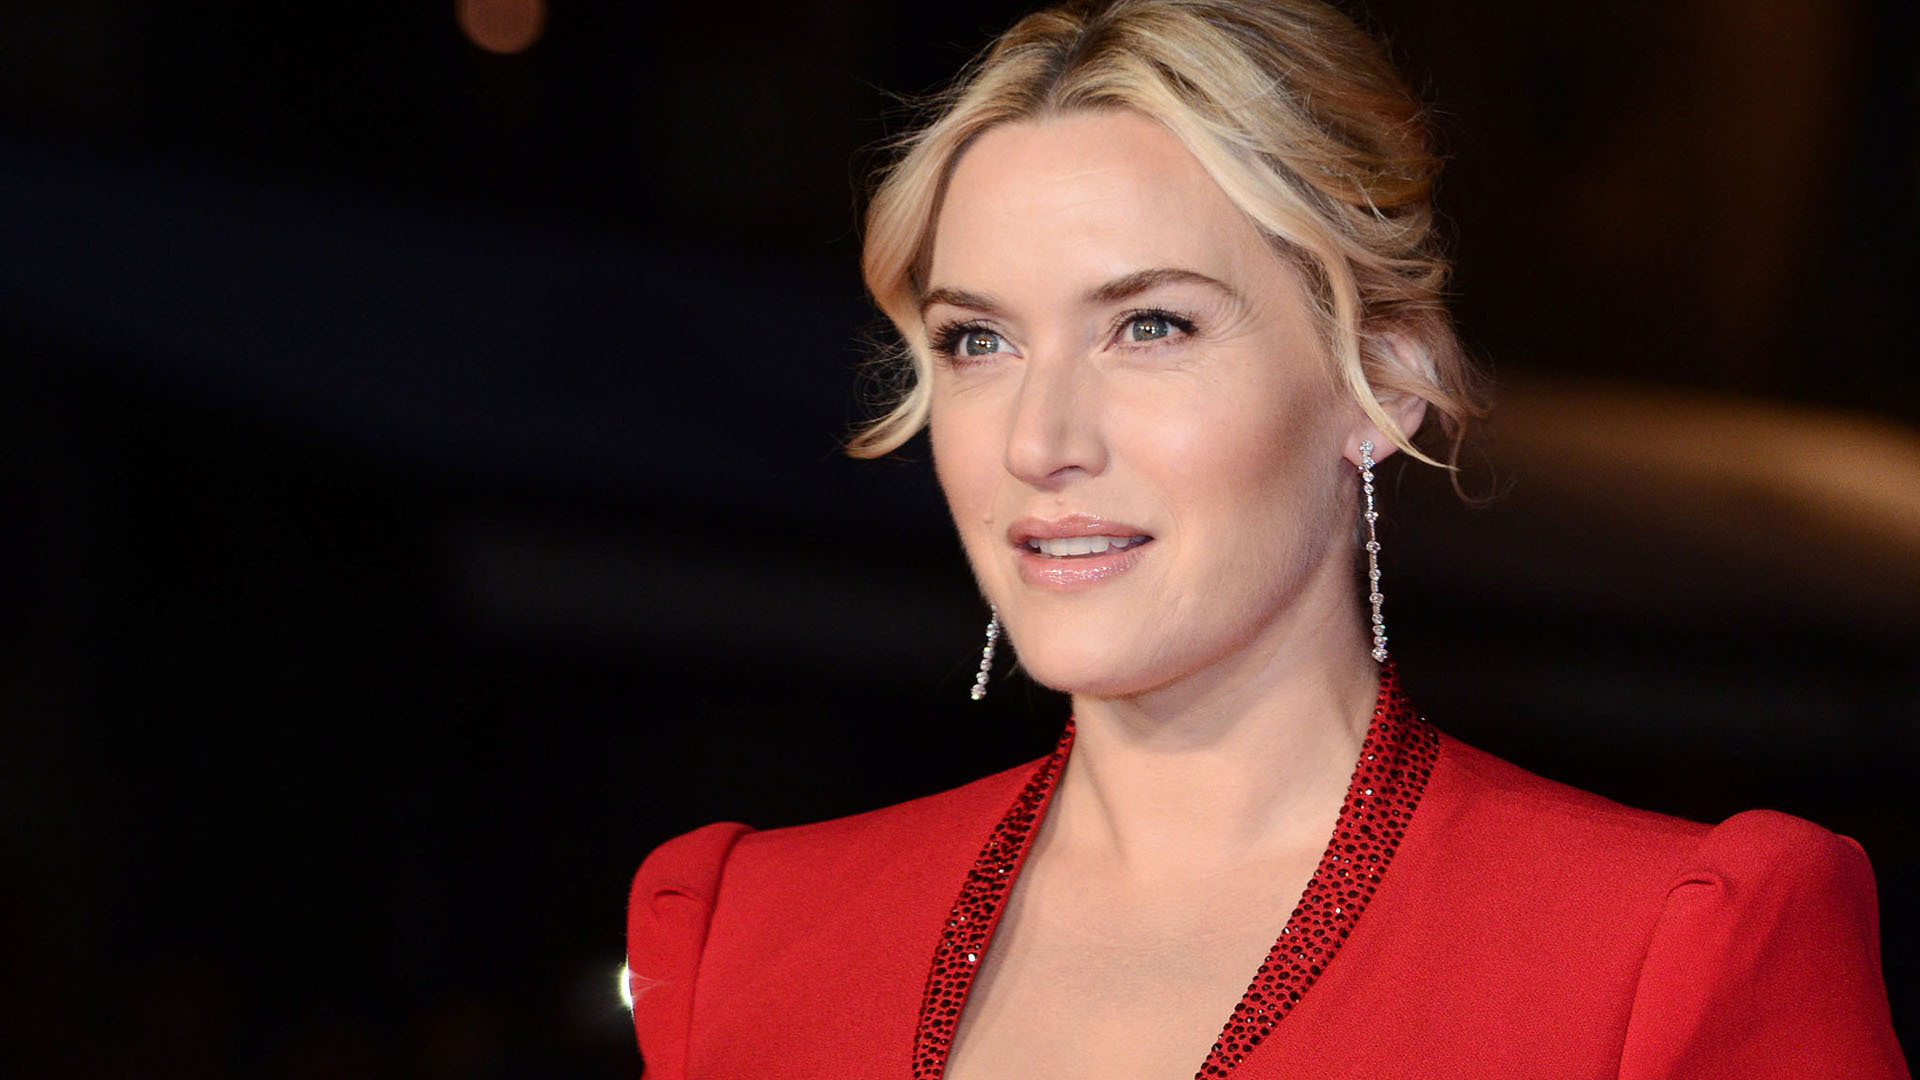 kate winslet wallpapers (66+ images)